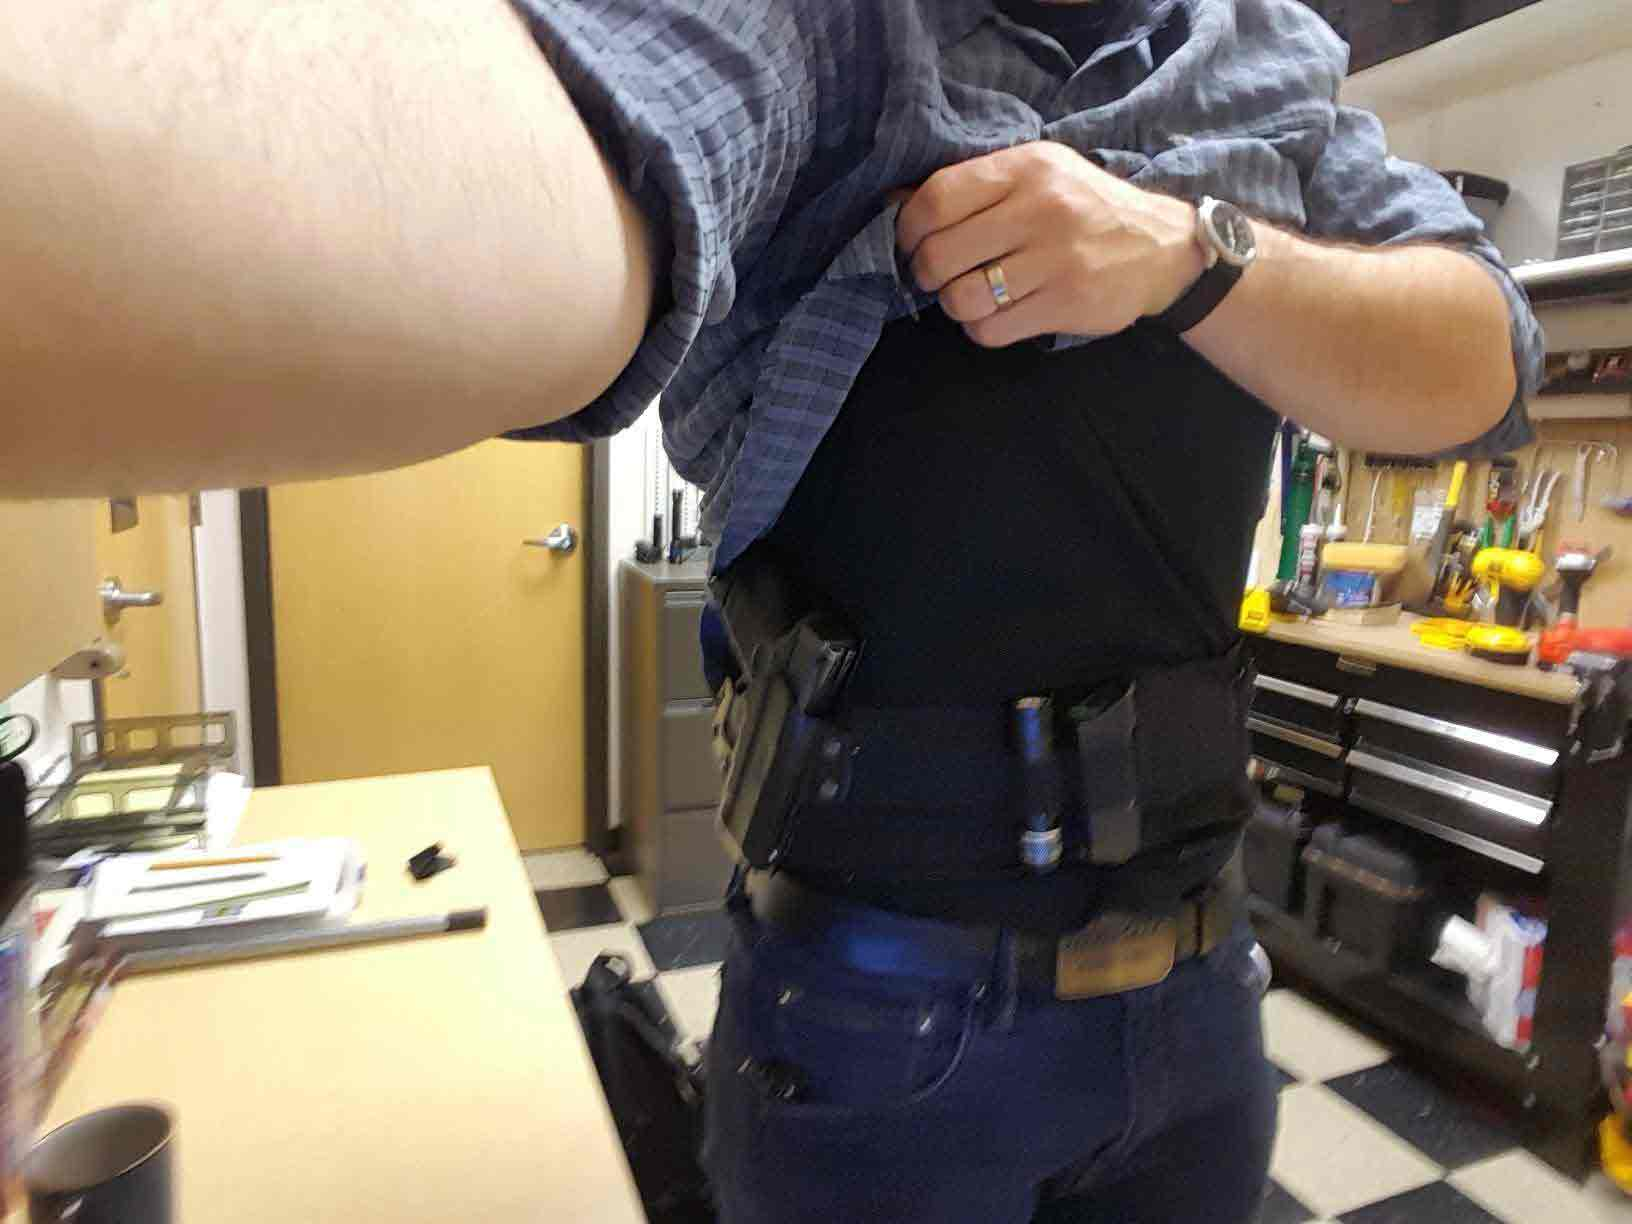 dragon belly holster review, belly band holster for men, customer picture